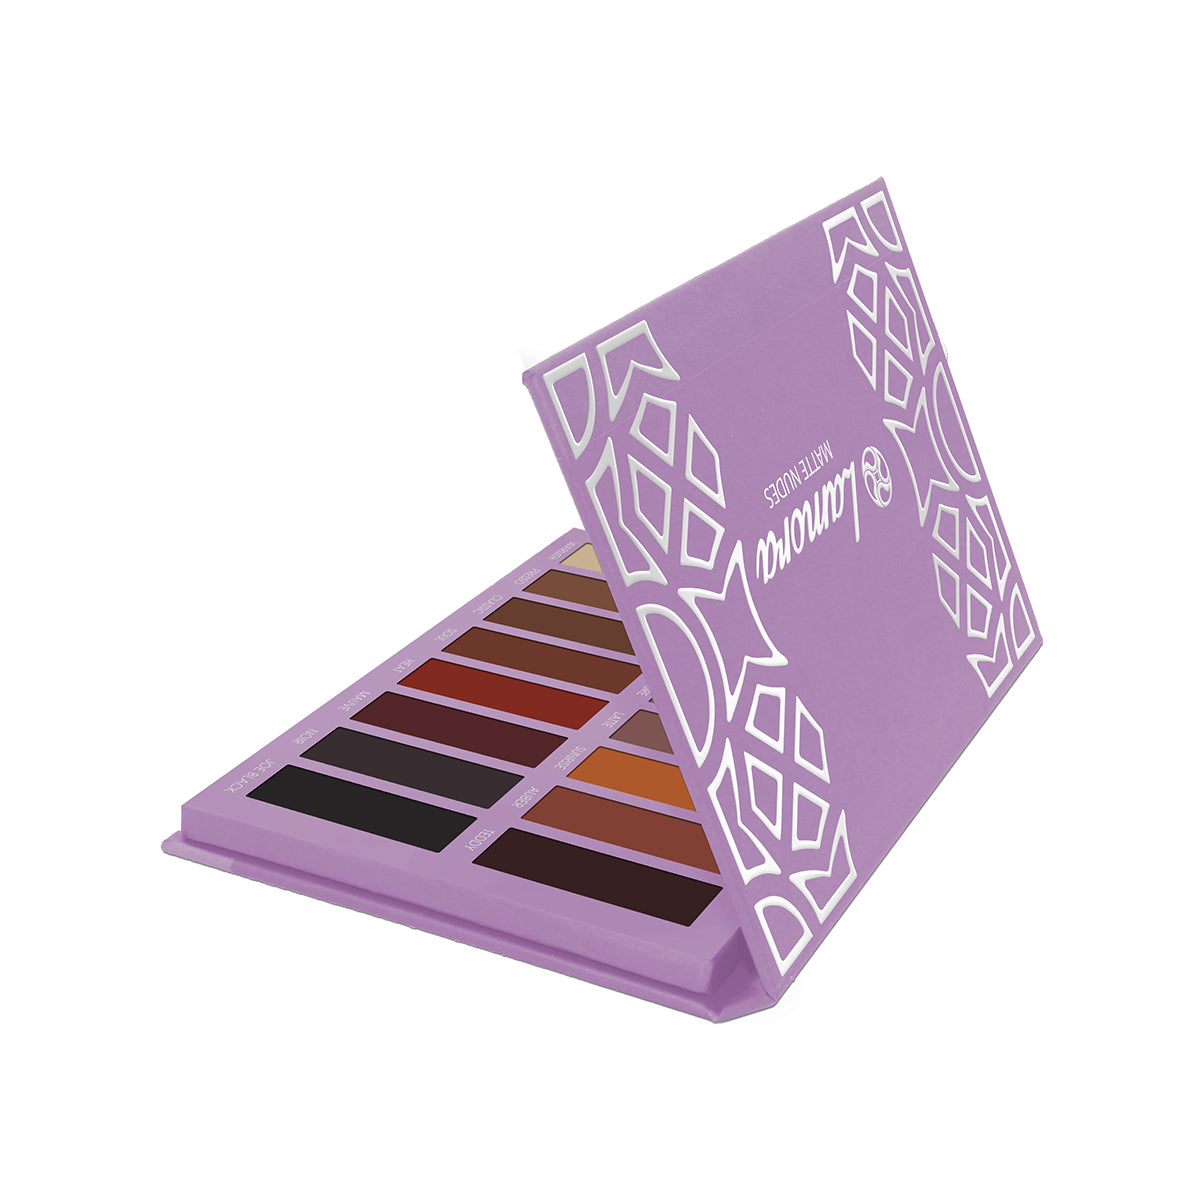 Eyeshadow makeup product box design